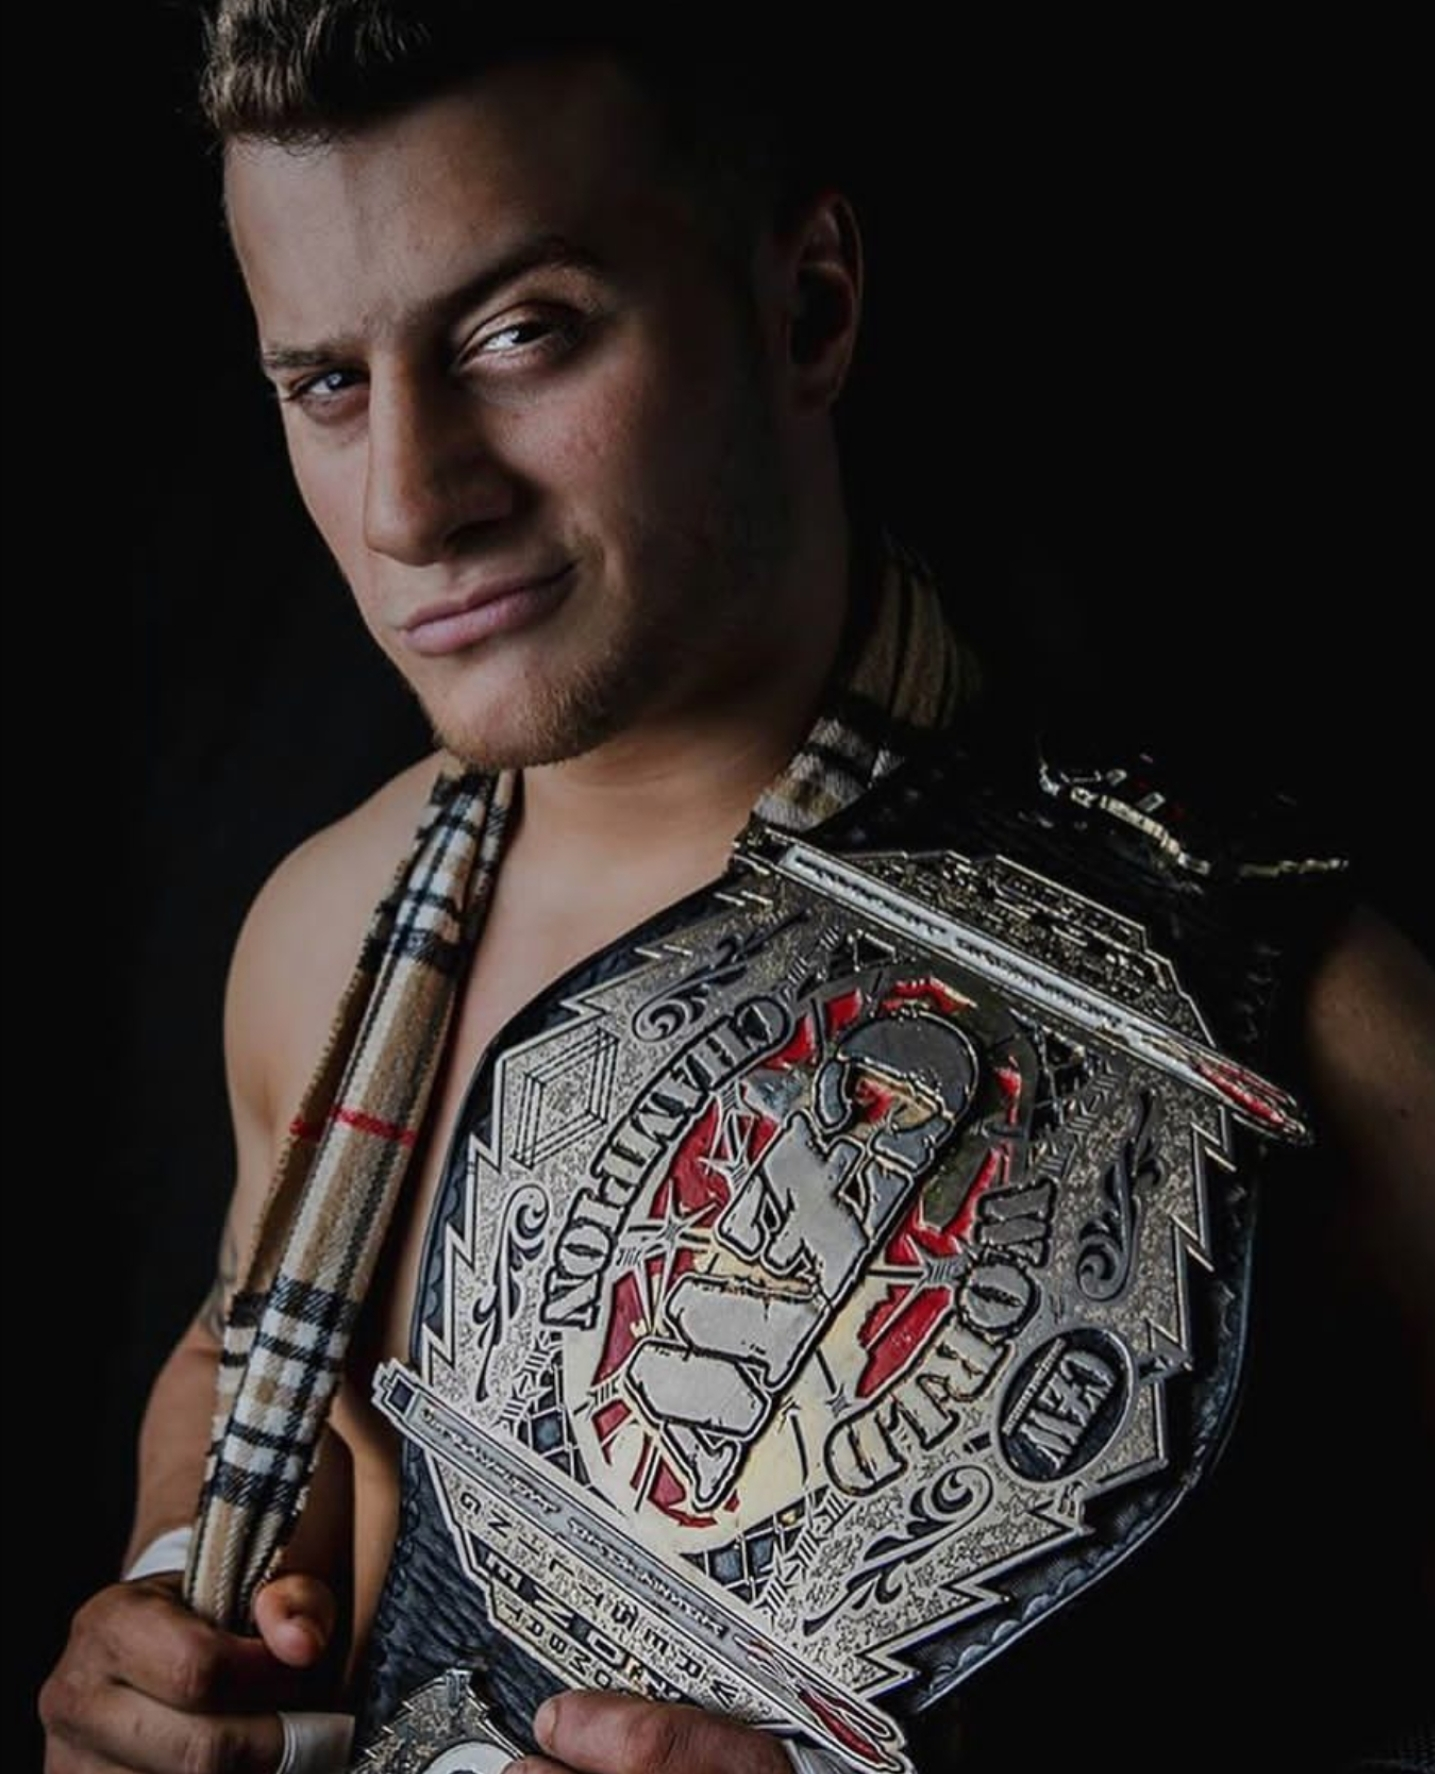 Thompson Challenges MJF for CZW Gold on June 10